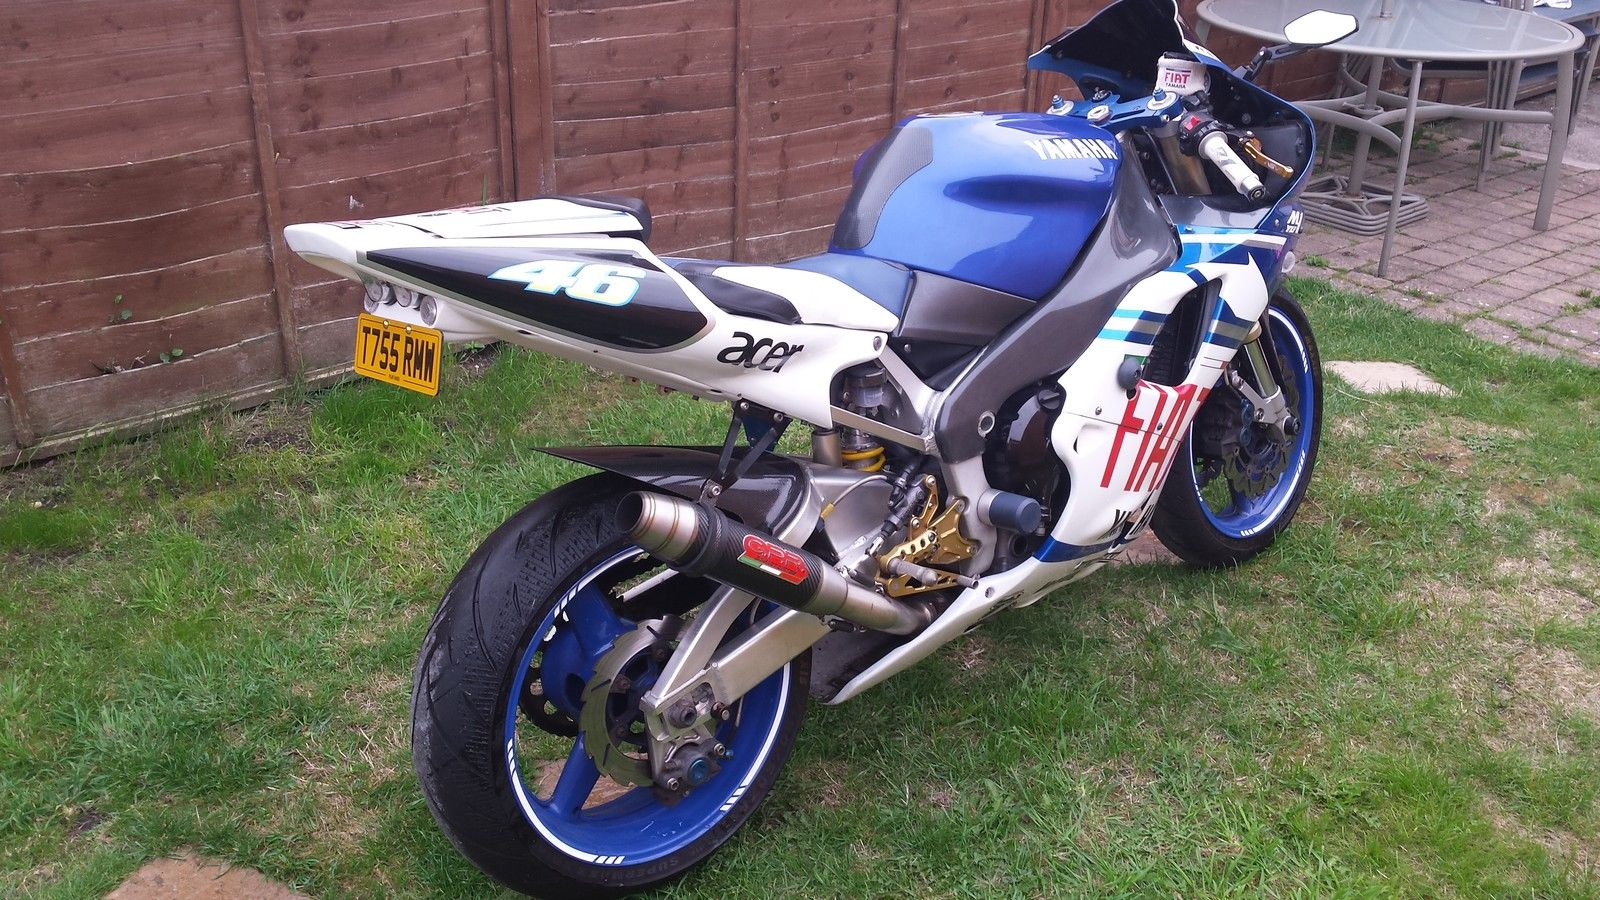 yamaha yzf r1 motorcycle 1000cc 99 model rossi replica lots of extras. Black Bedroom Furniture Sets. Home Design Ideas